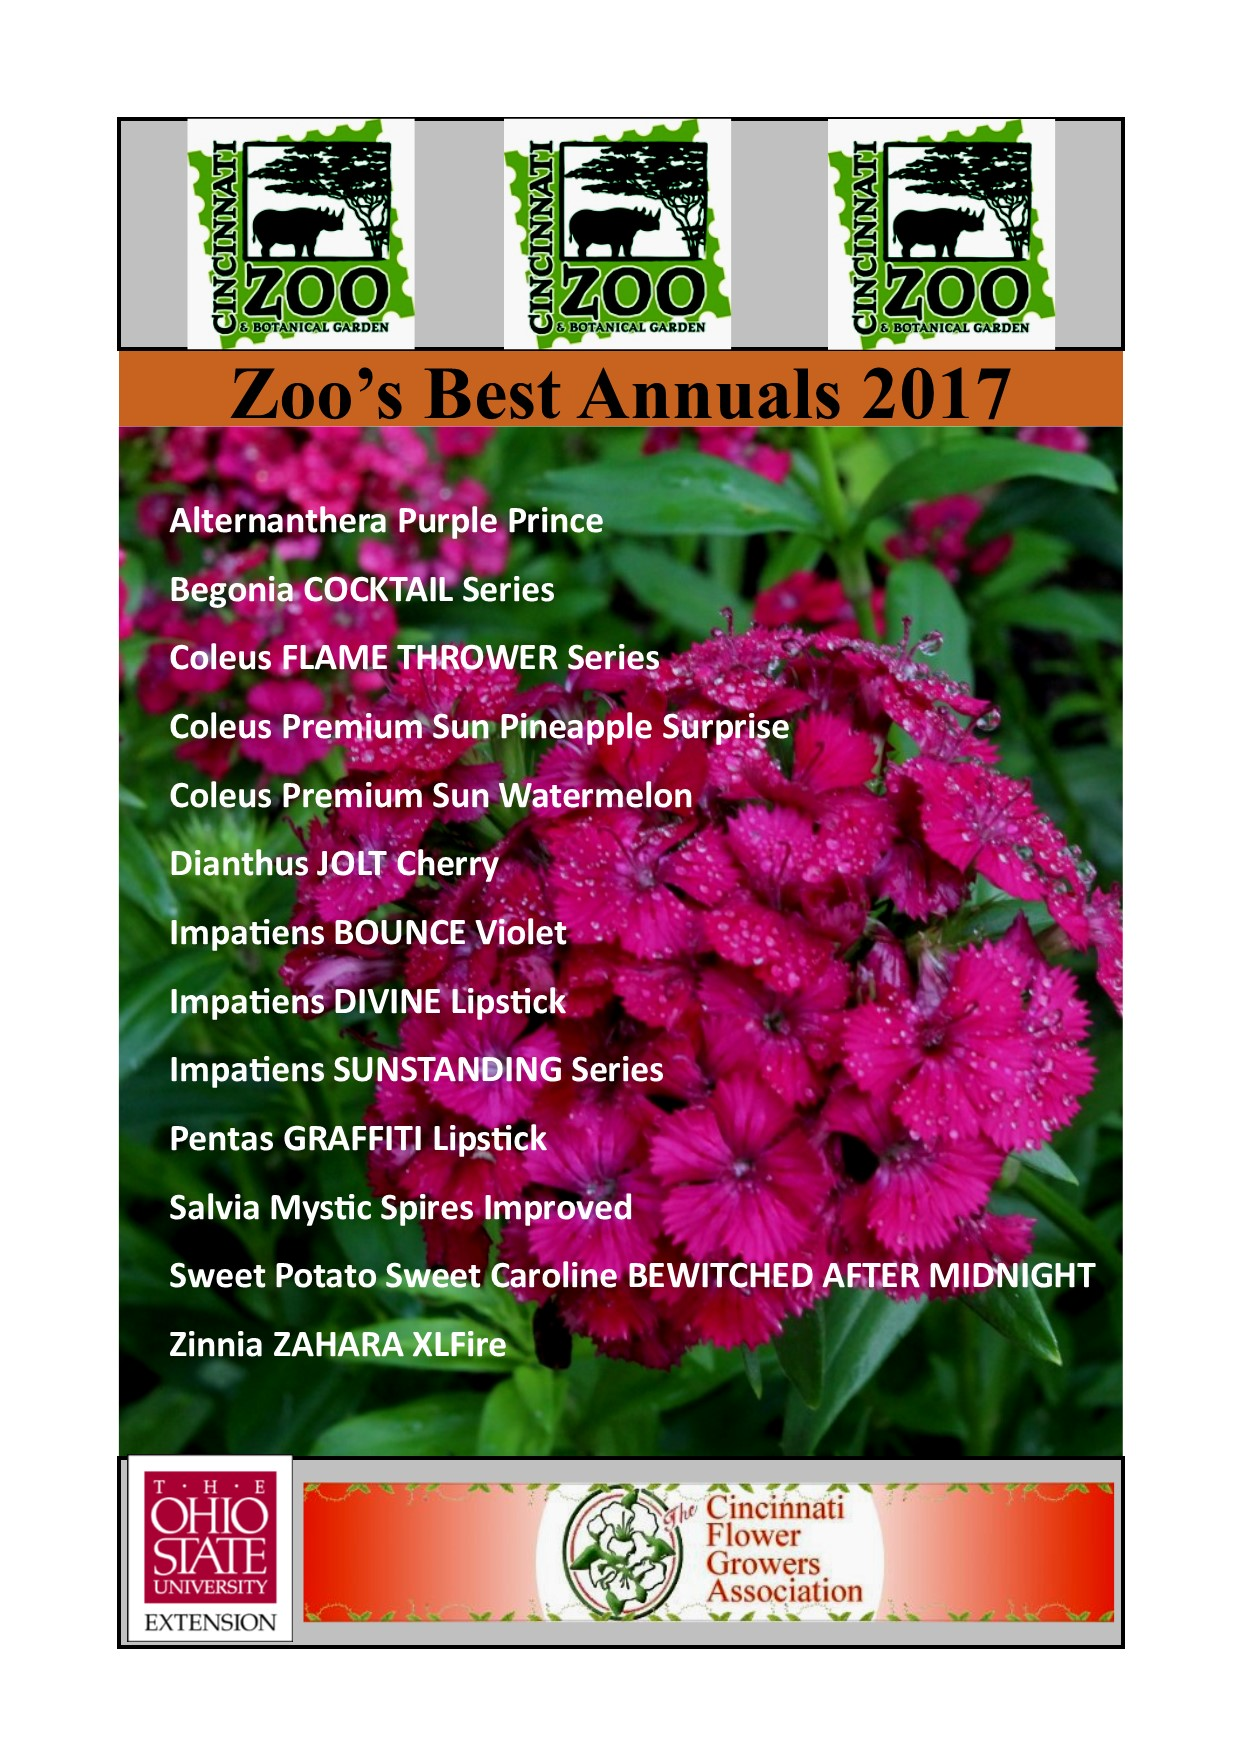 Zoo garden experts reveal 2017 picks for best annuals cincinnati we also put together a yearly list of the zoos best annuals izmirmasajfo